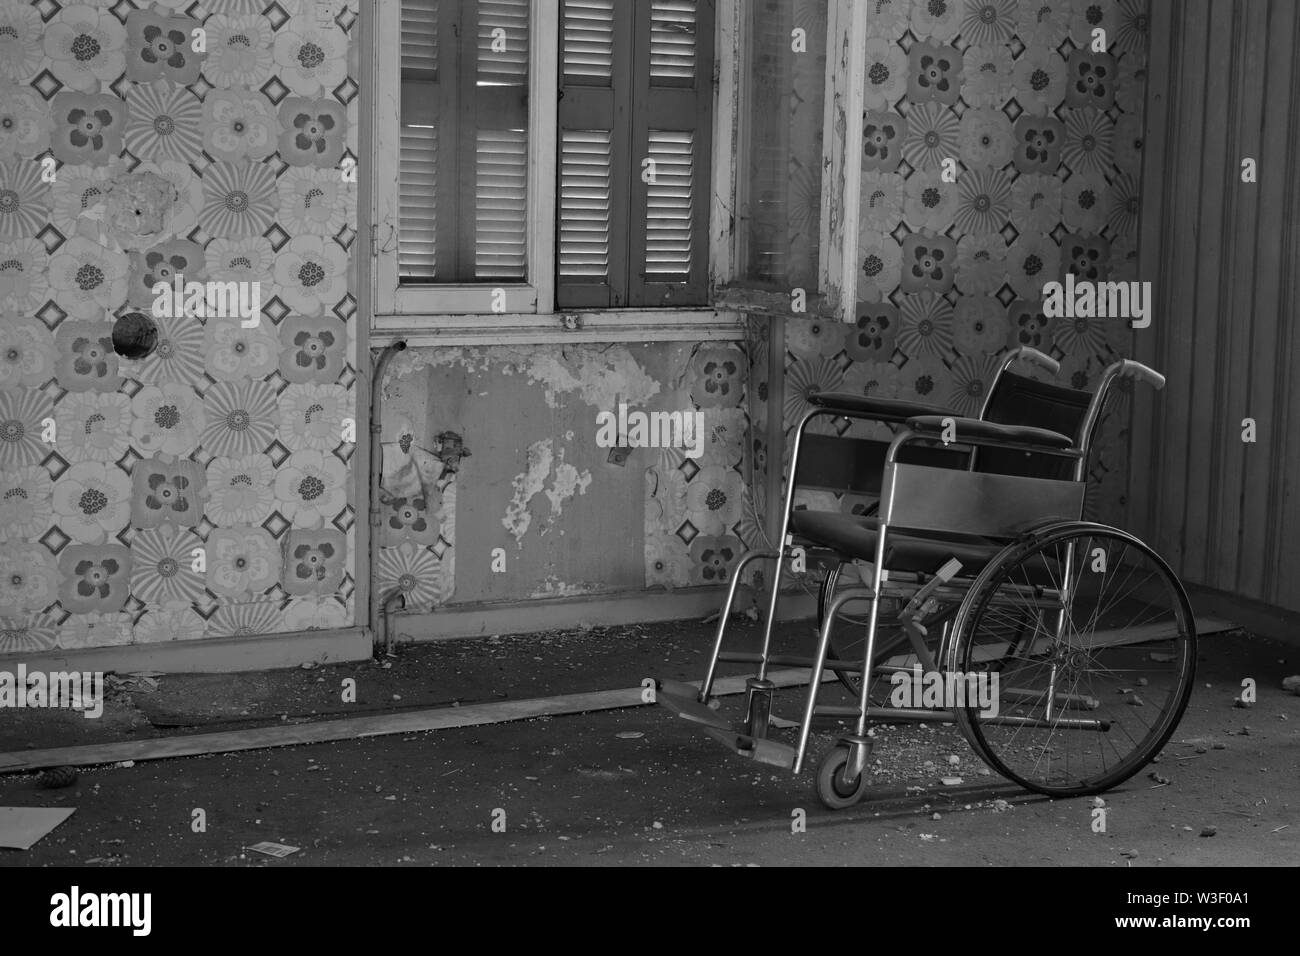 Antique wheelchair in abandoned house interior. Black and white. - Stock Image